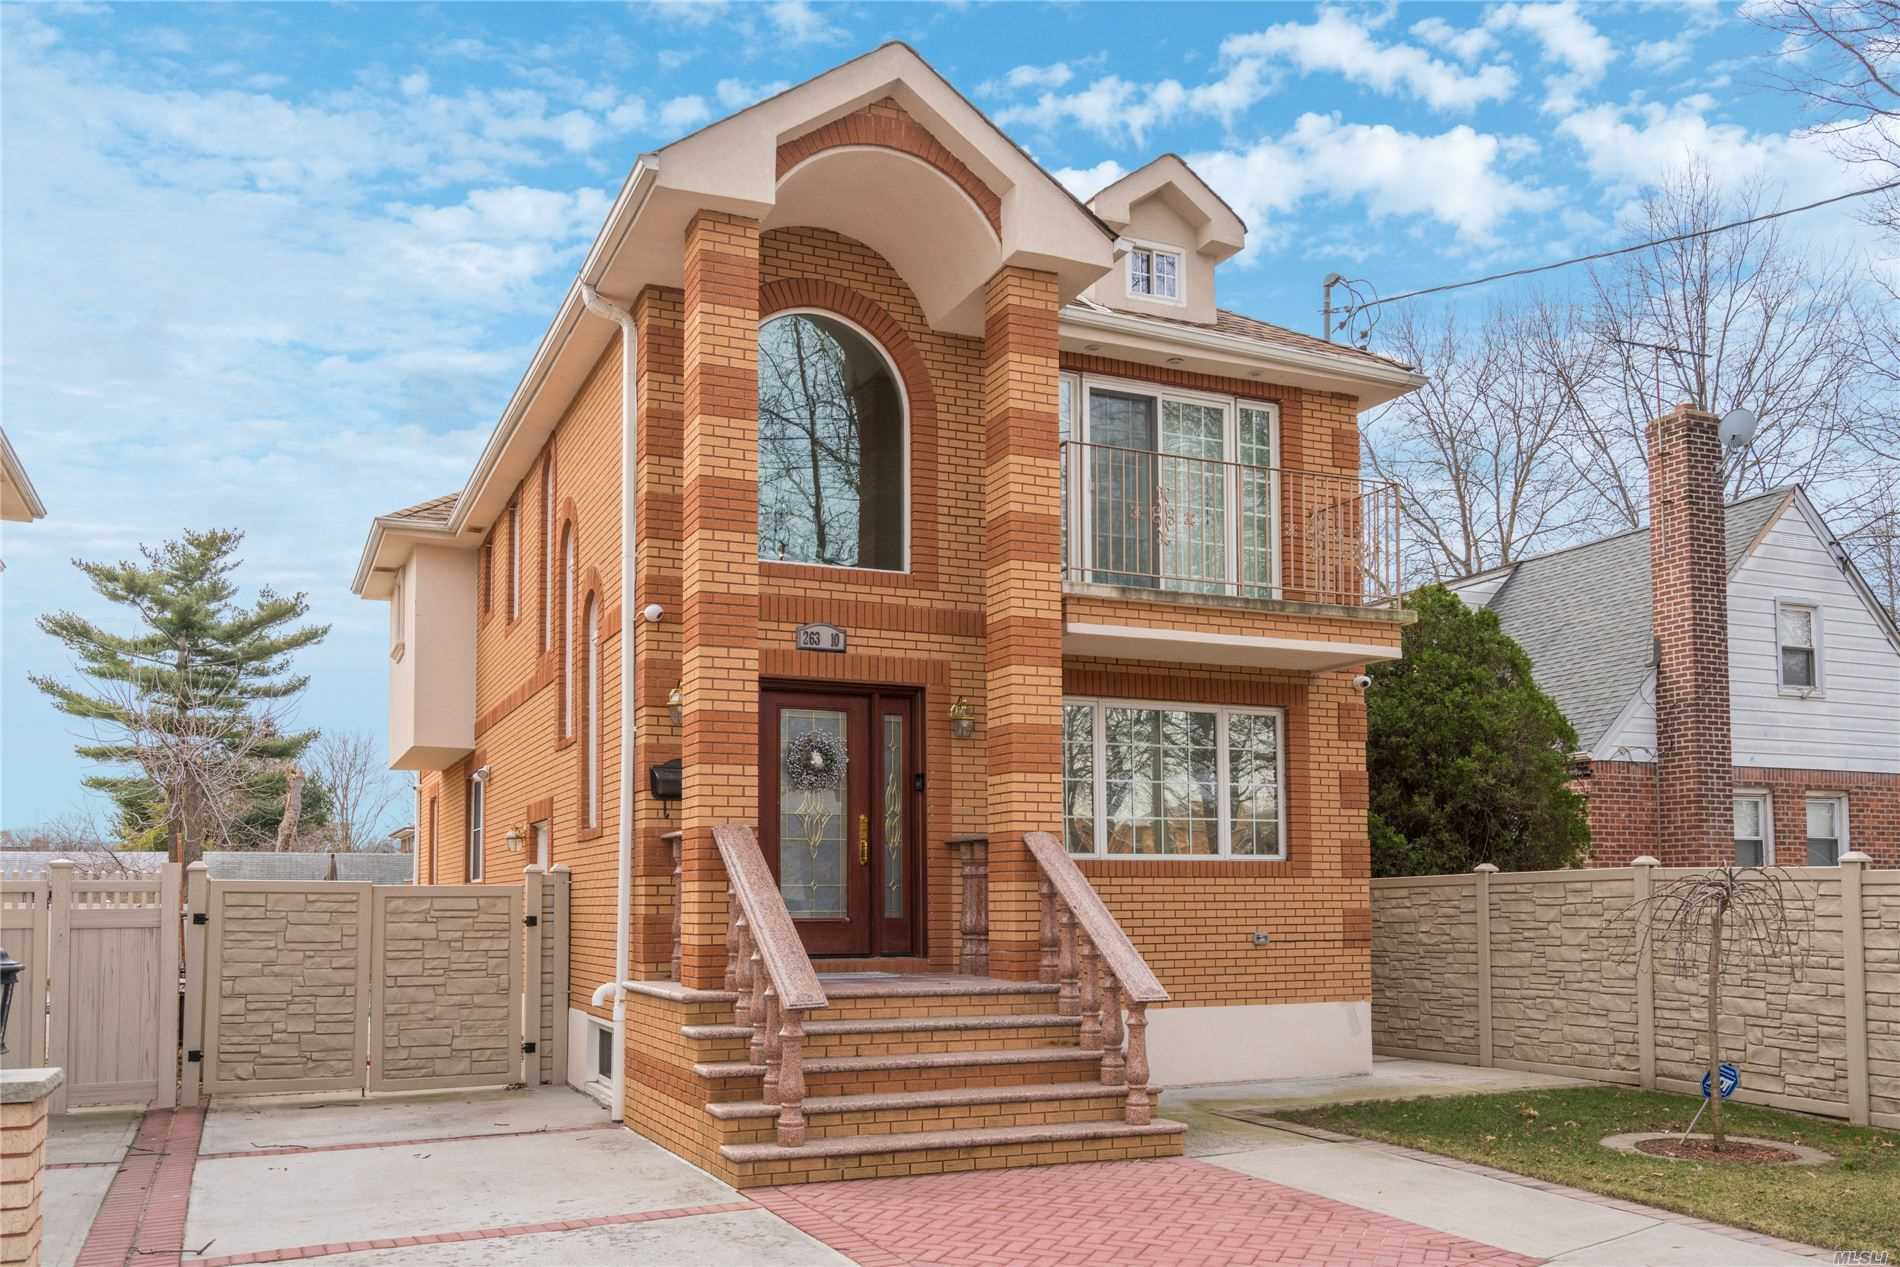 House for sale Floral Park, NY 263-10 Williston Avenue E